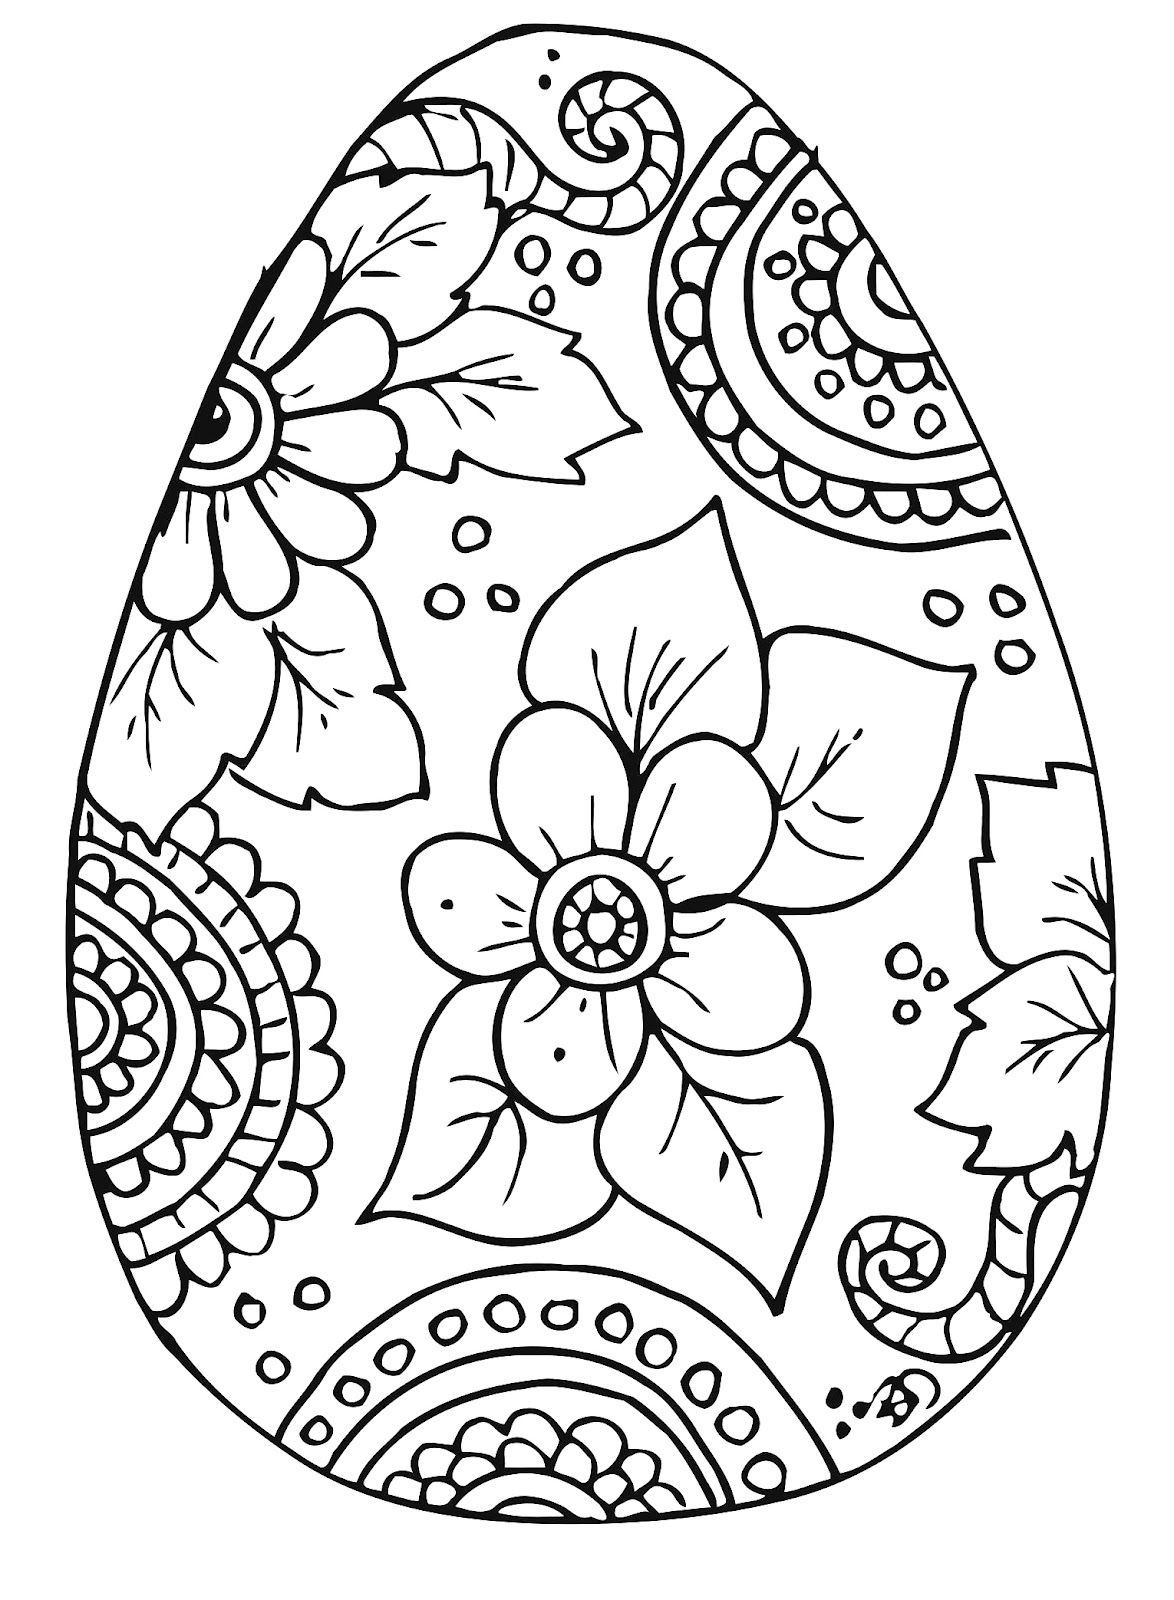 10 Cool Free Printable Easter Coloring Pages For Kids Who've Moved - Free Printable Easter Coloring Pictures